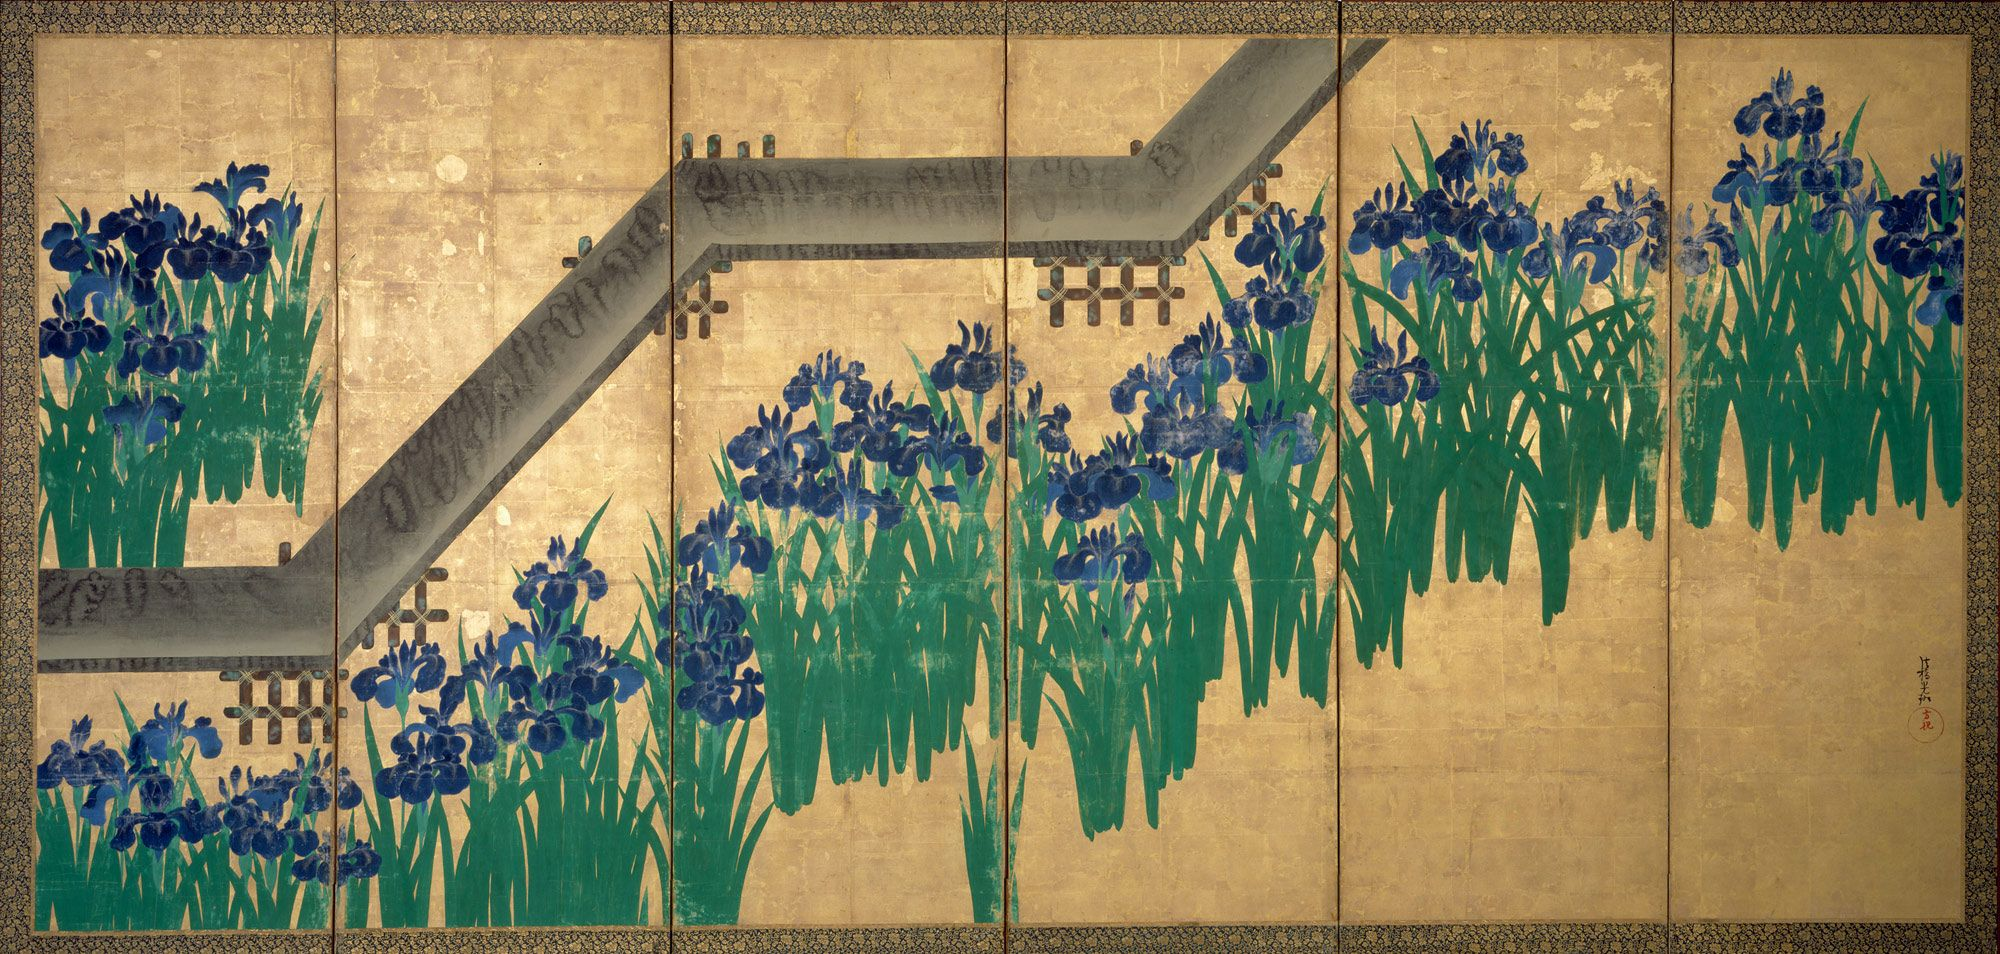 Color in japanese art -  Br Irises At Yatsuhashi Eight Bridges Artist Ogata K Rin Japanese Period Edo Period Date After 1709 Culture Japan Medium Pair Of